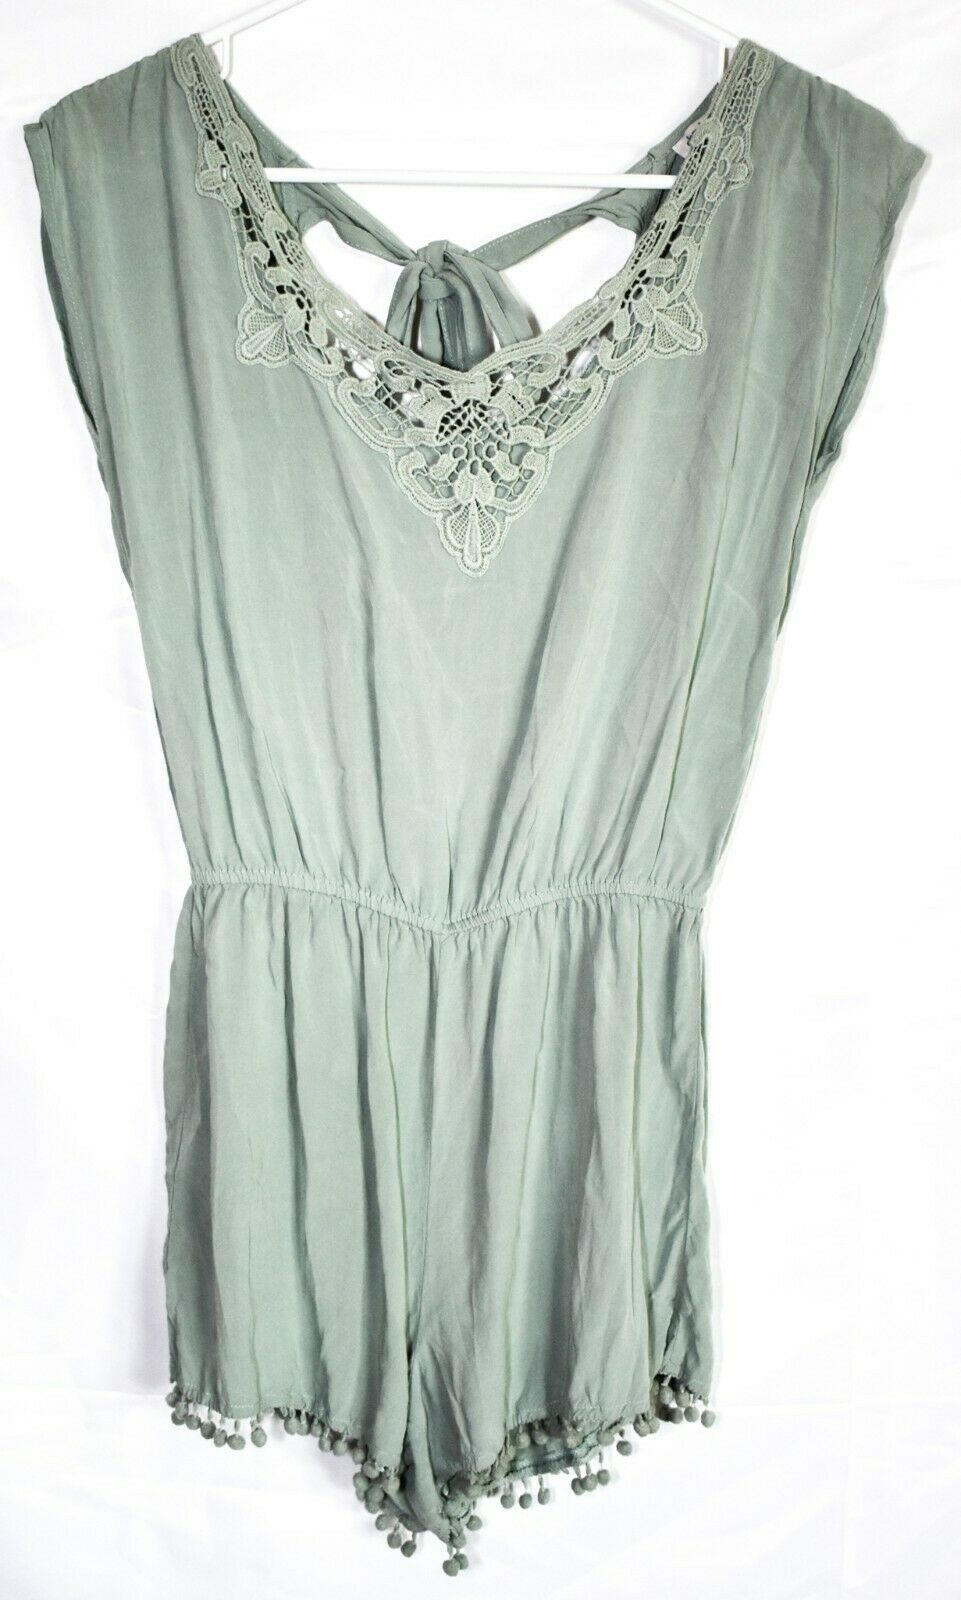 Charlotte Russe Pale Mint Green Sleeveless Tieback Romper w Lace Accents Size S